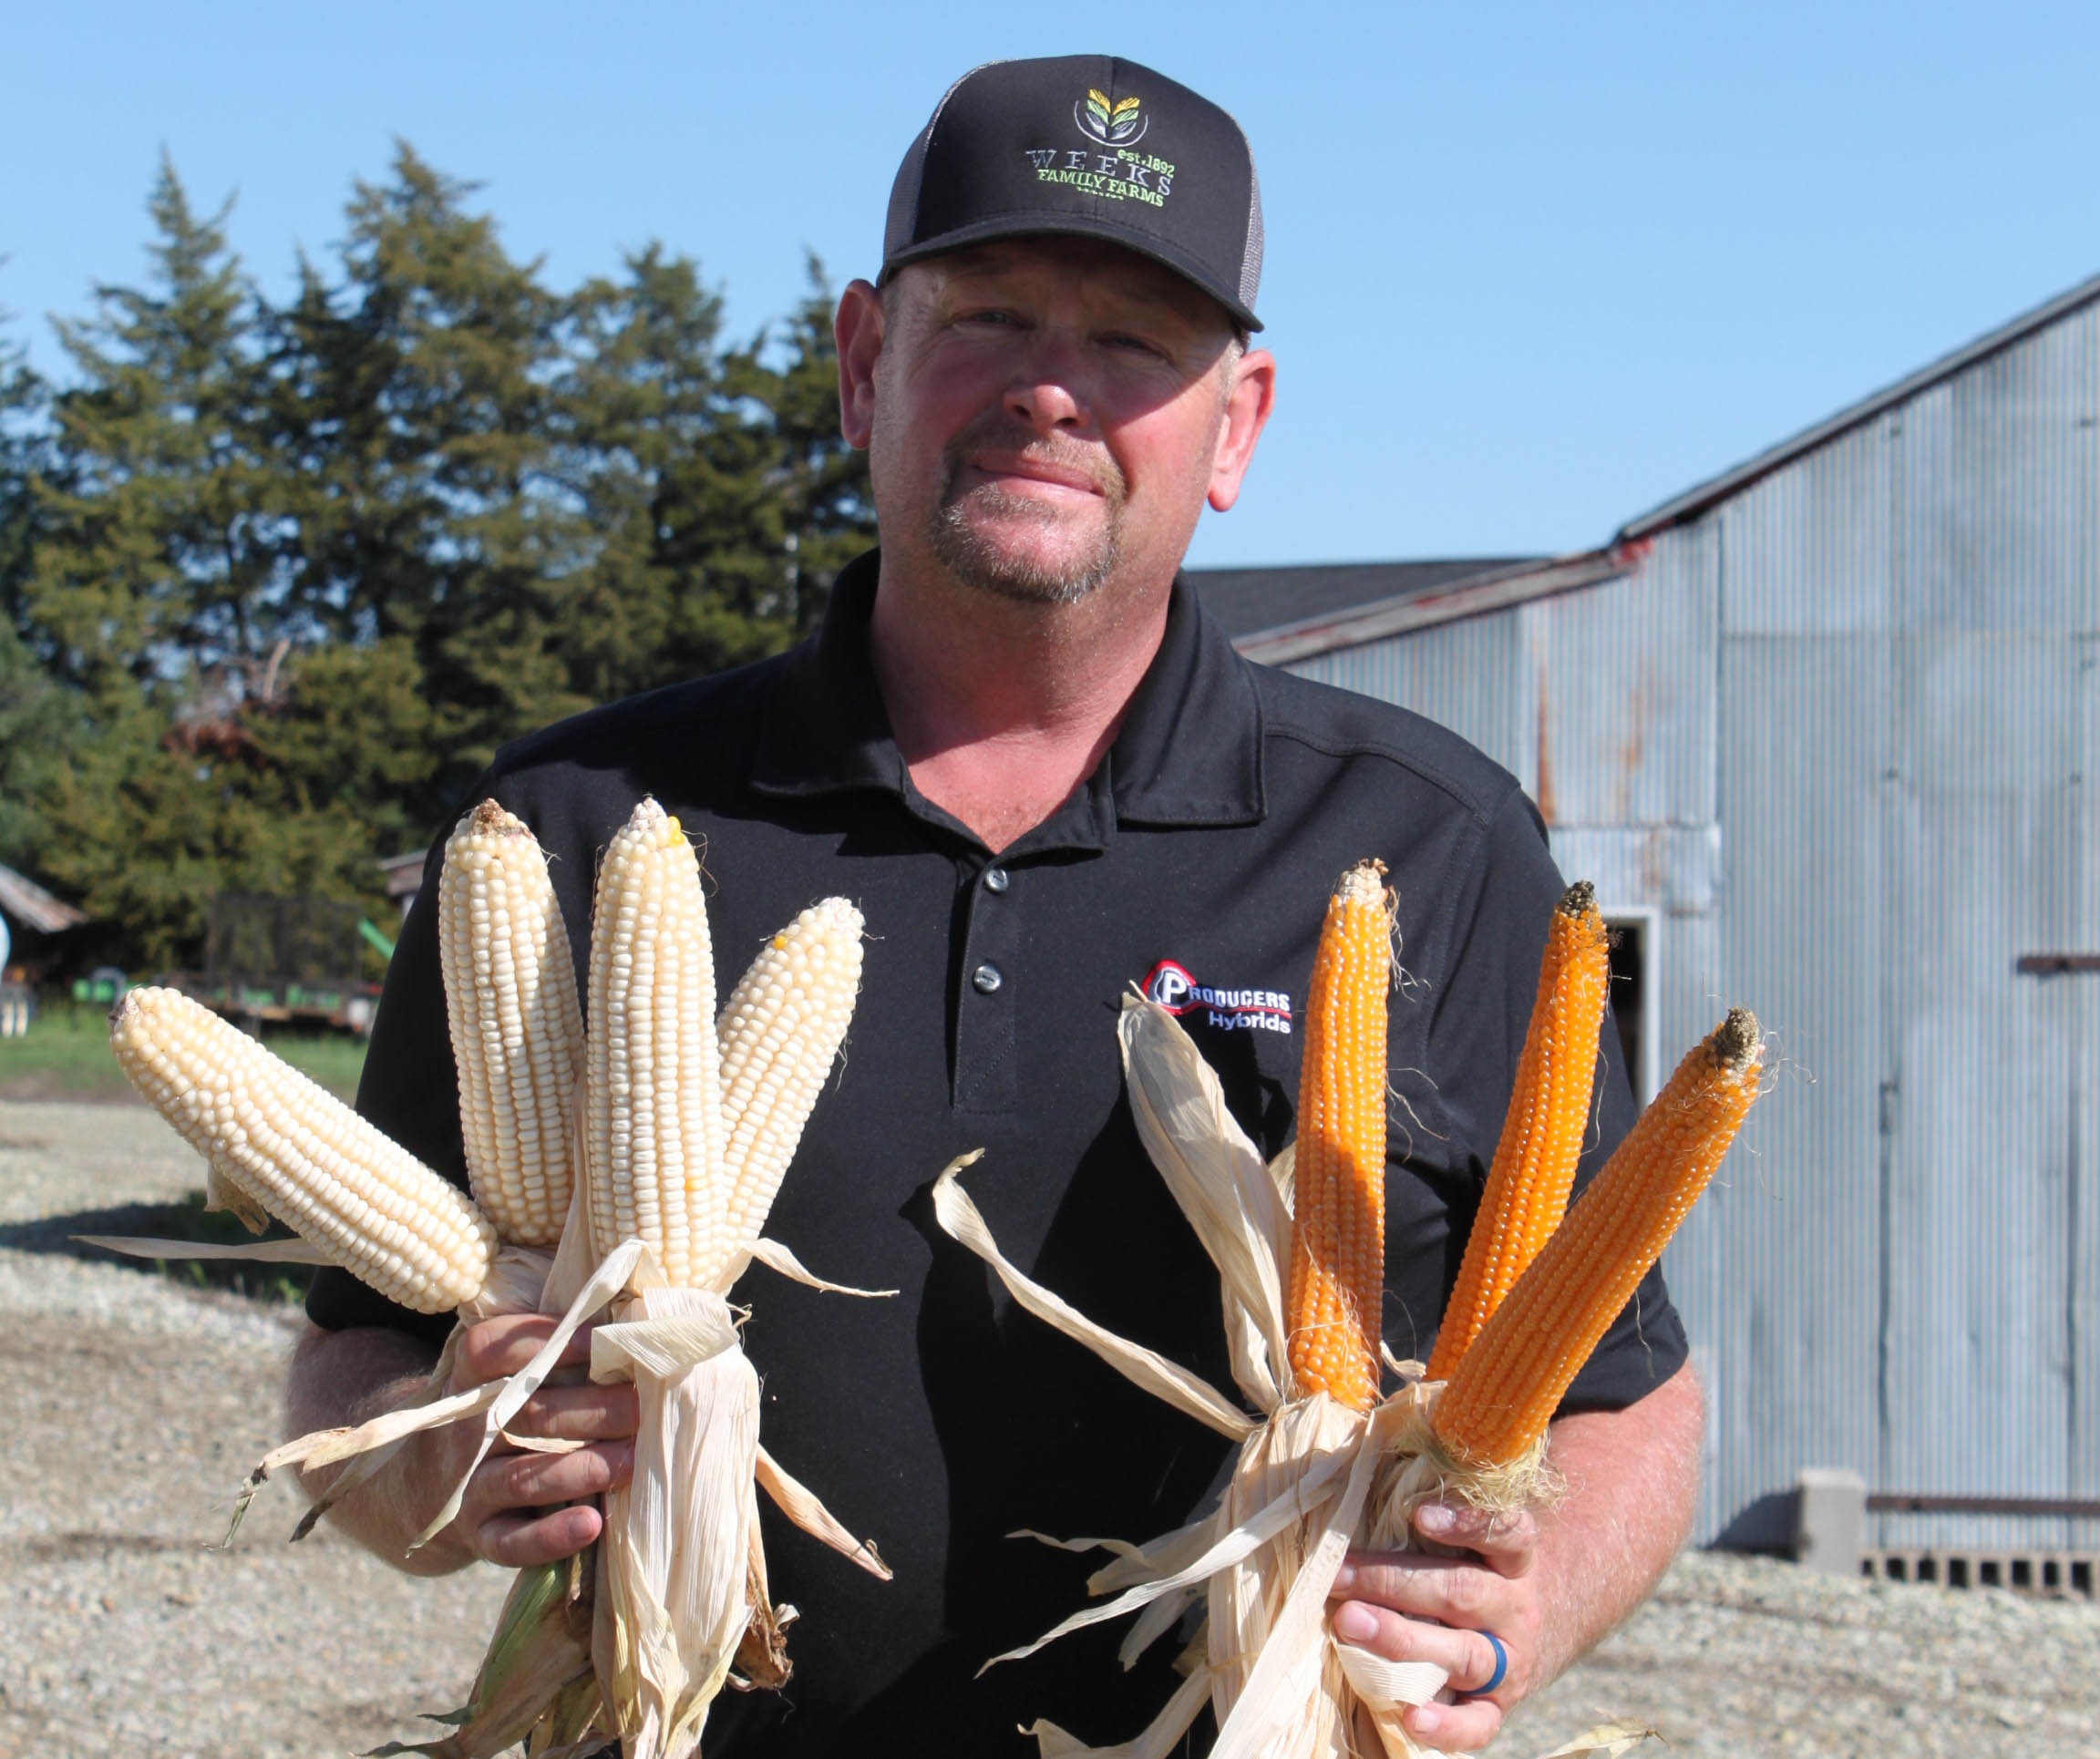 Ryan Weeks non-gmo organic corn farmer